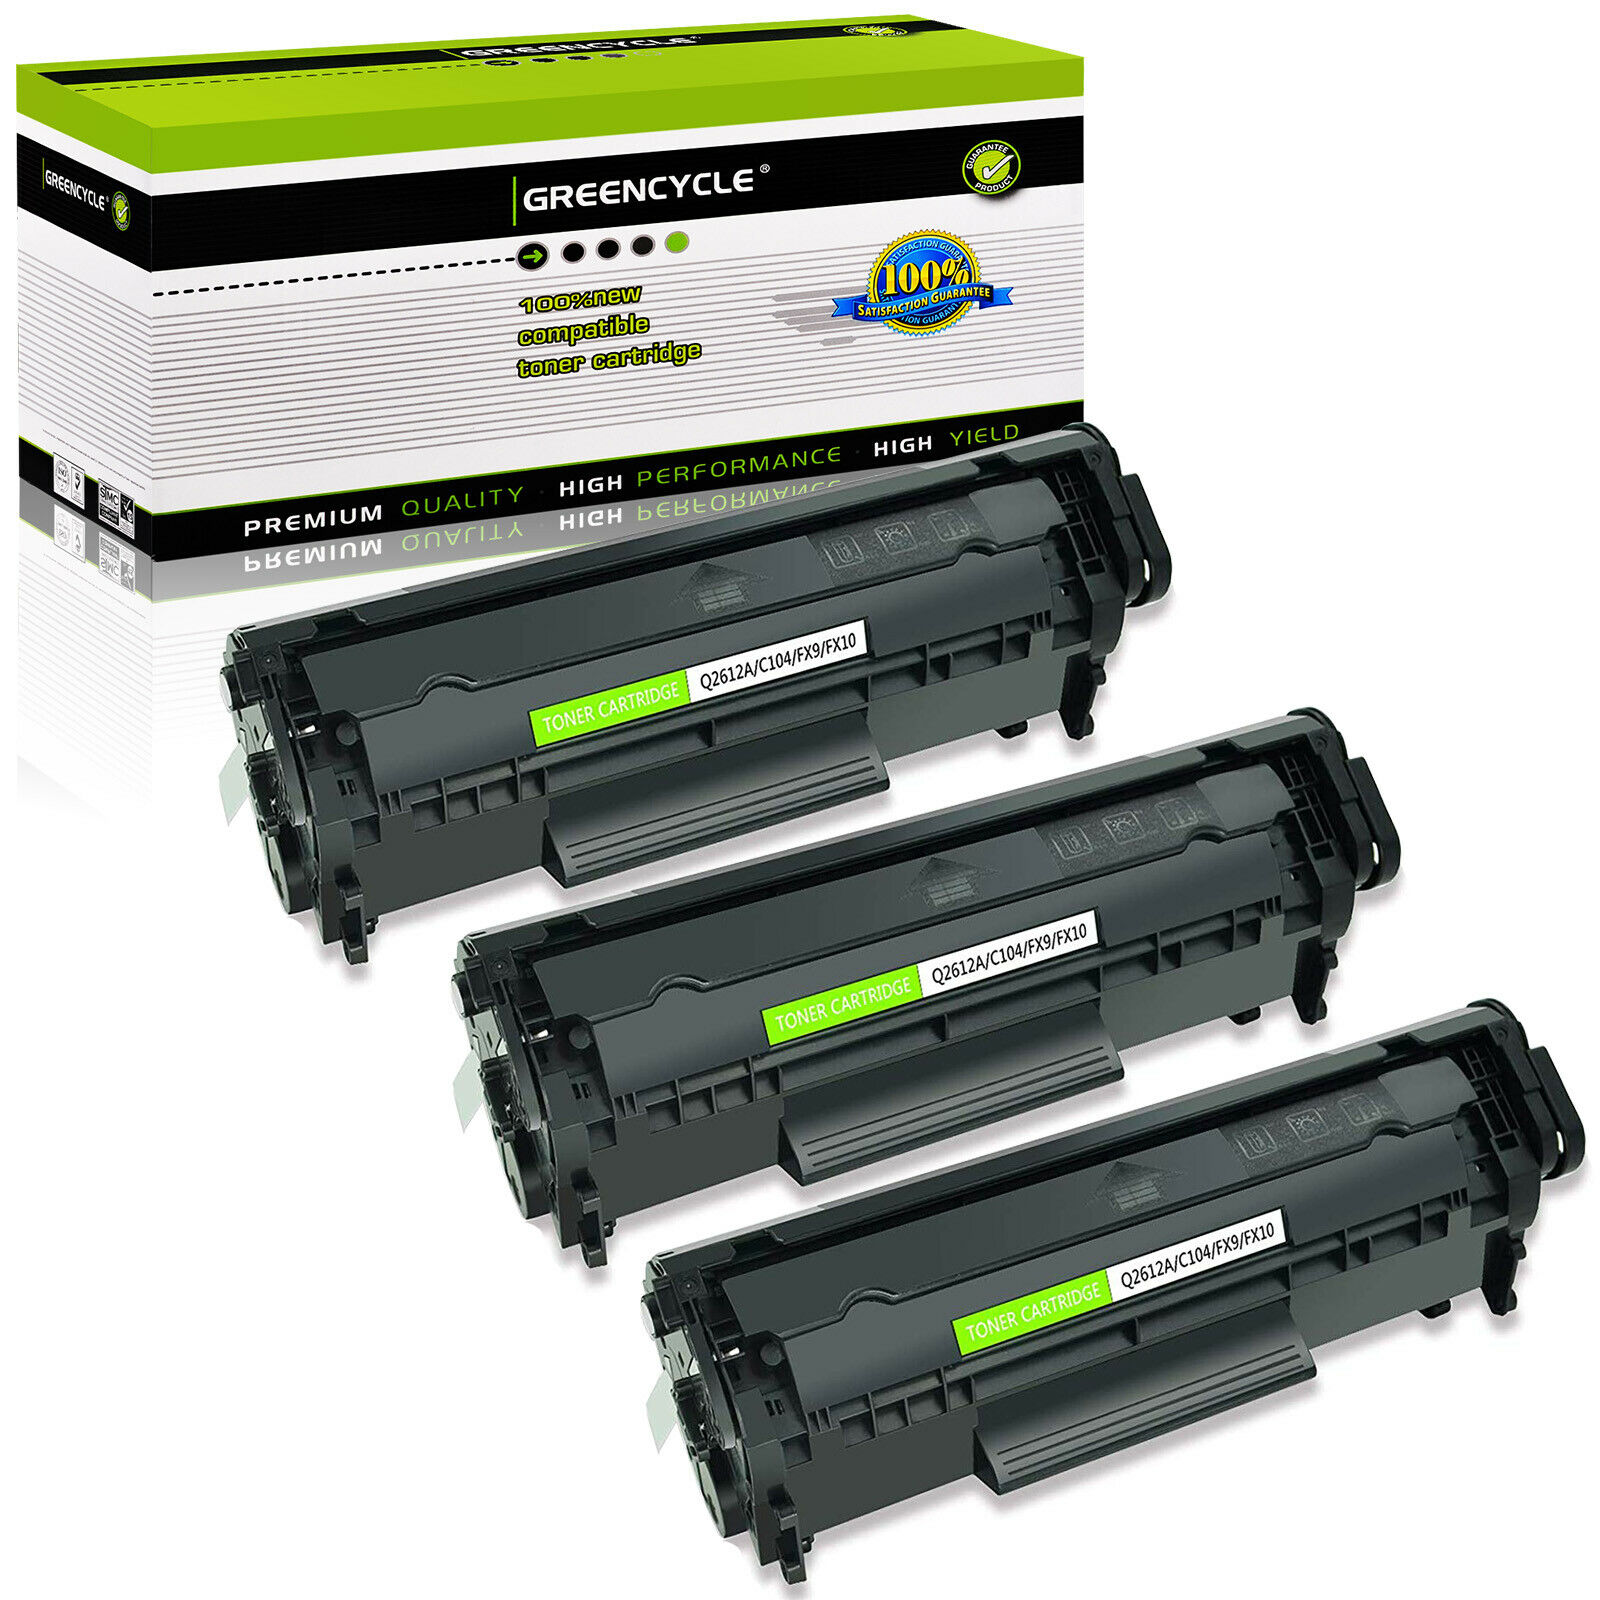 3pk Q2612a 12a Toner Cartridge Compatible For Hp Laserjet 1022 3015 3055 Printer 1 Of 7free Shipping